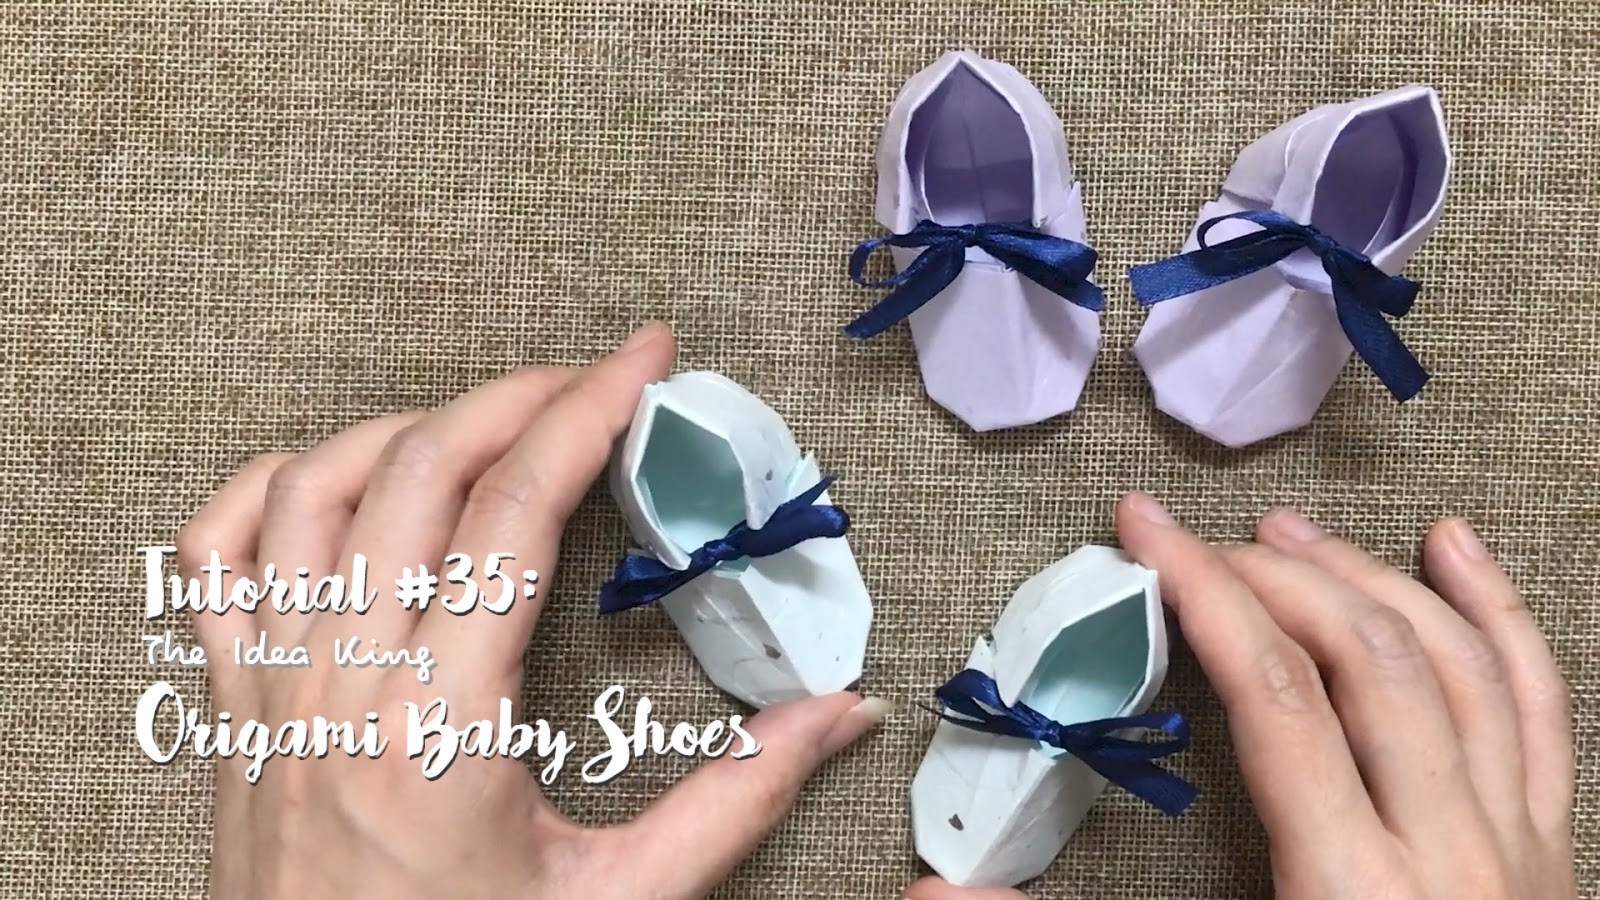 Tutorial 35 Origami Cute Baby Shoes The Idea King